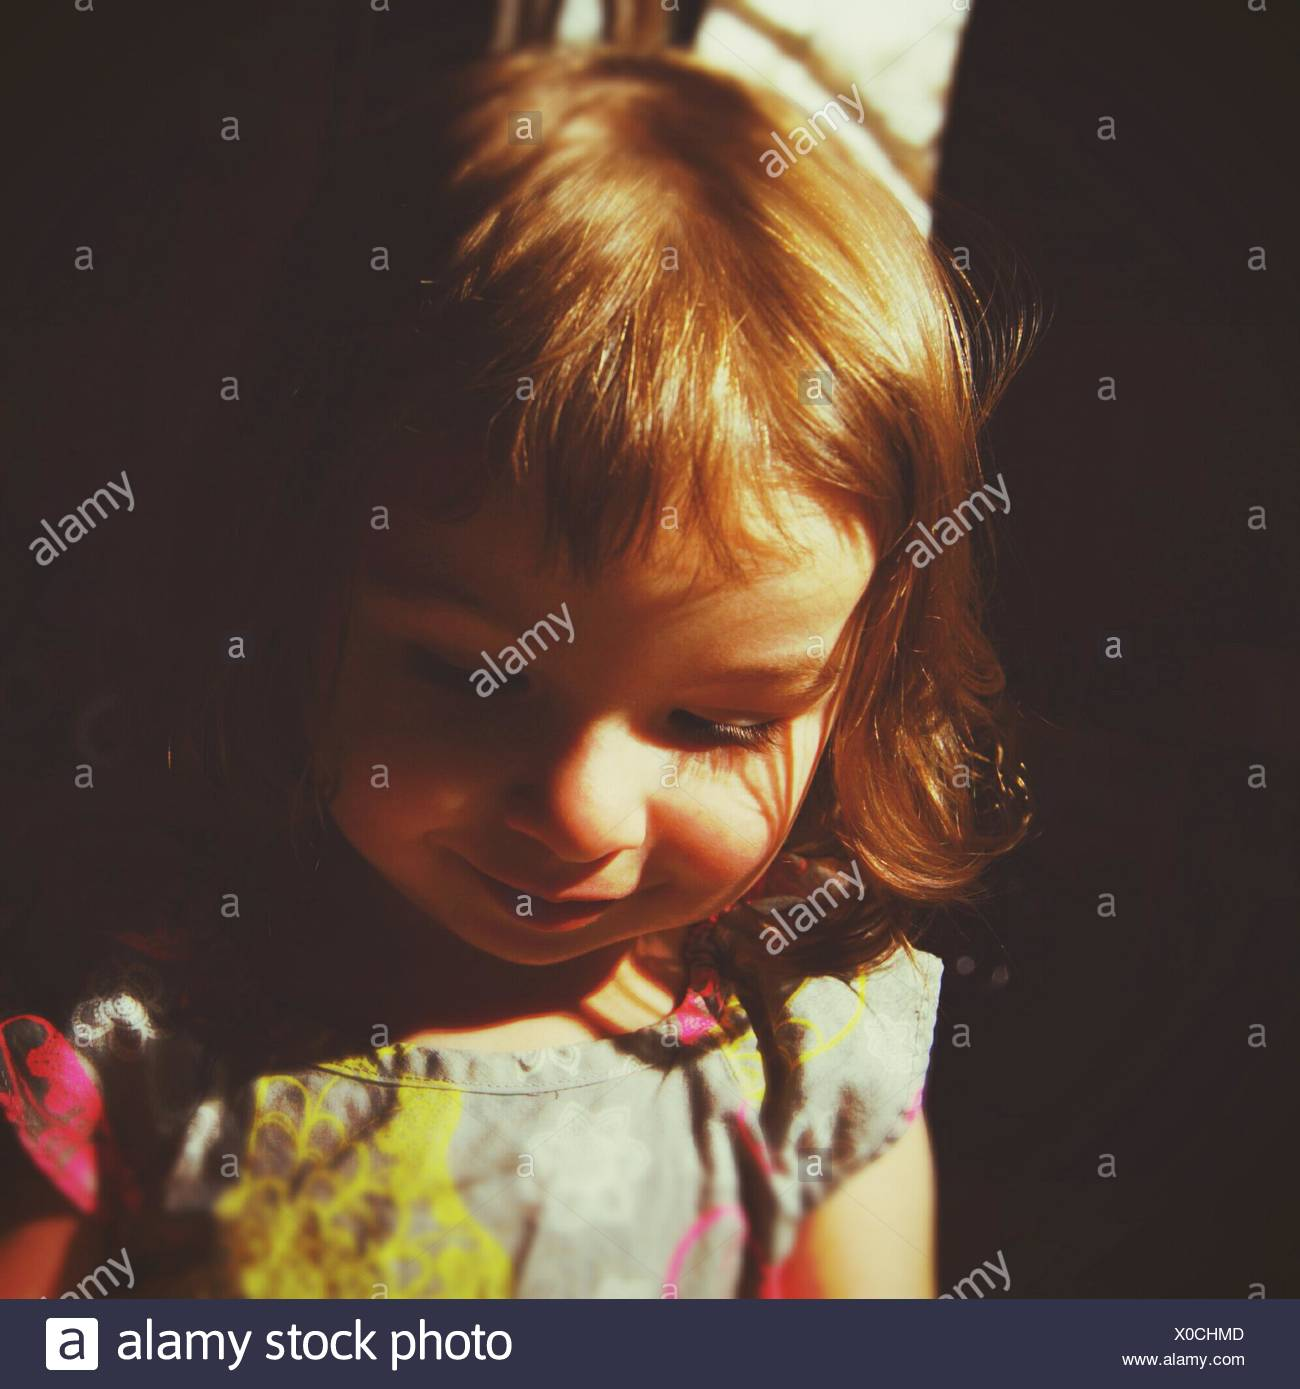 Close-Up Of Cute Girl Smiling While Looking Down - Stock Image